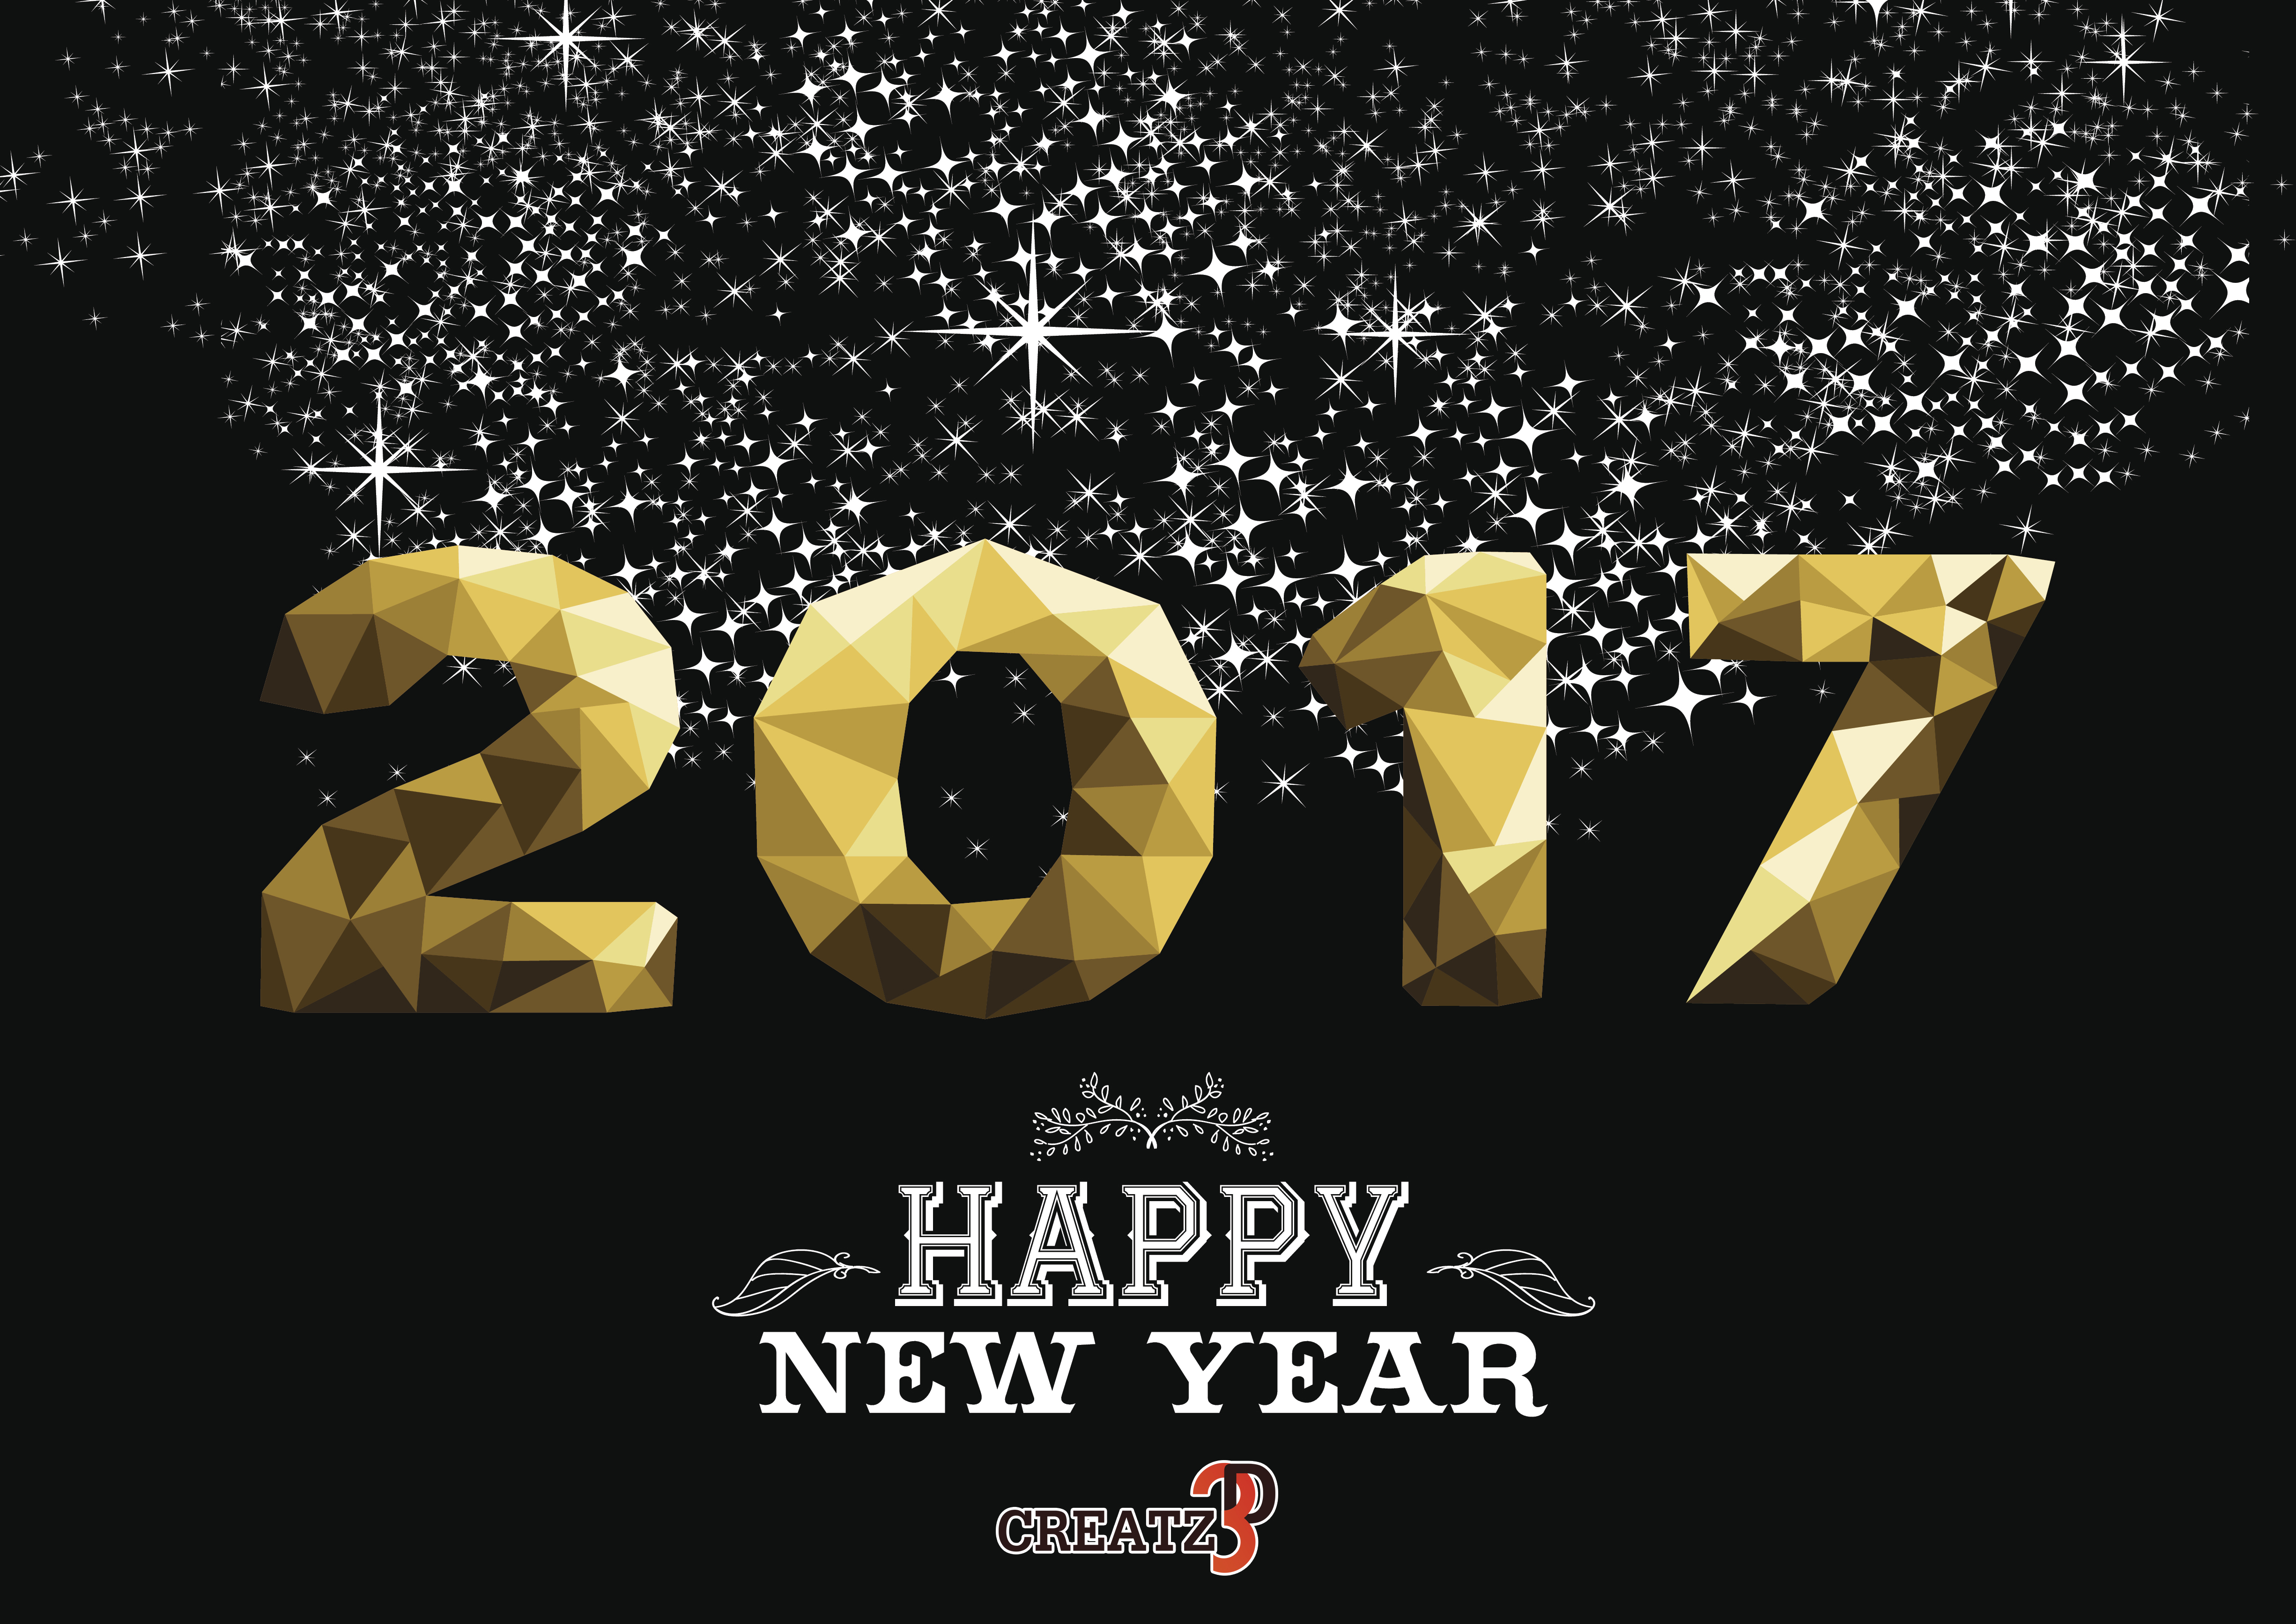 Happy new year 2017 gold low poly geometry design on night firework background. Ideal for greeting card, party invitation or web. EPS10 vector.